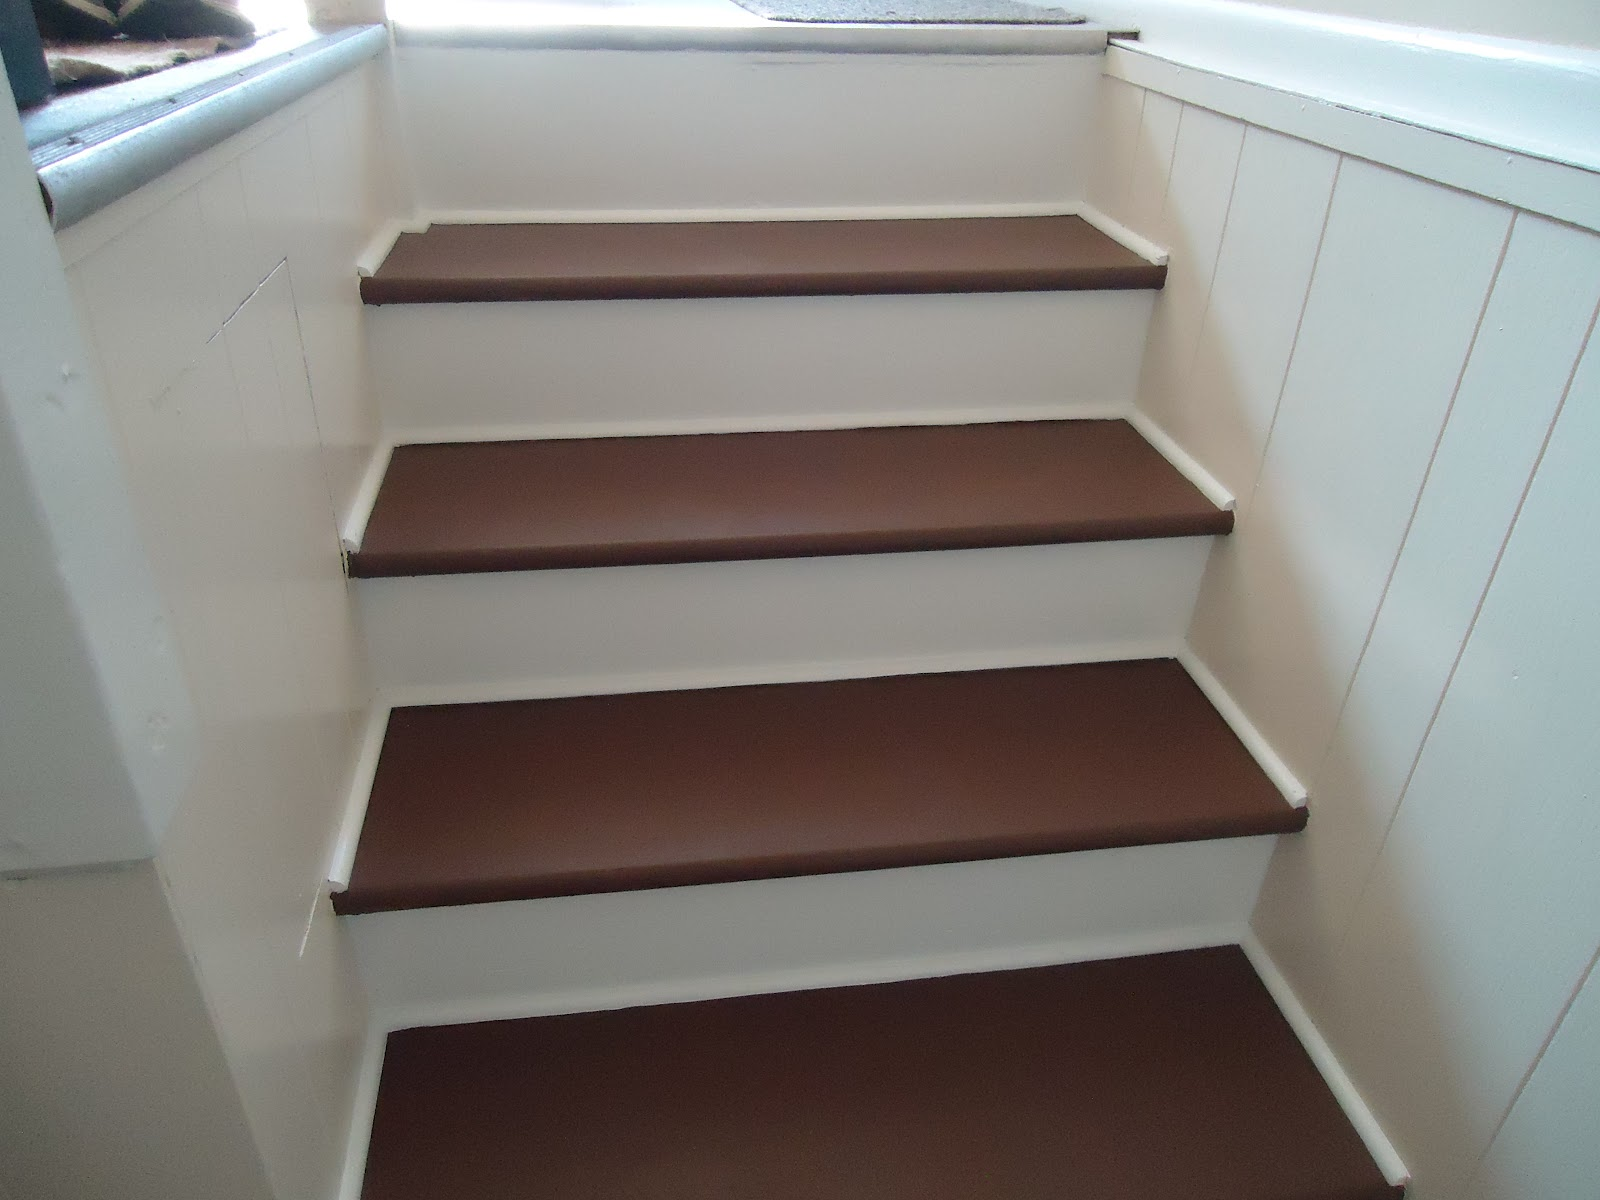 I Chose To Paint The Steps A Chocolate Brown On The Treads, And Pain The  Risers White. I Also Added Molding Along The Outside Edges And Also The  Joint Where ...